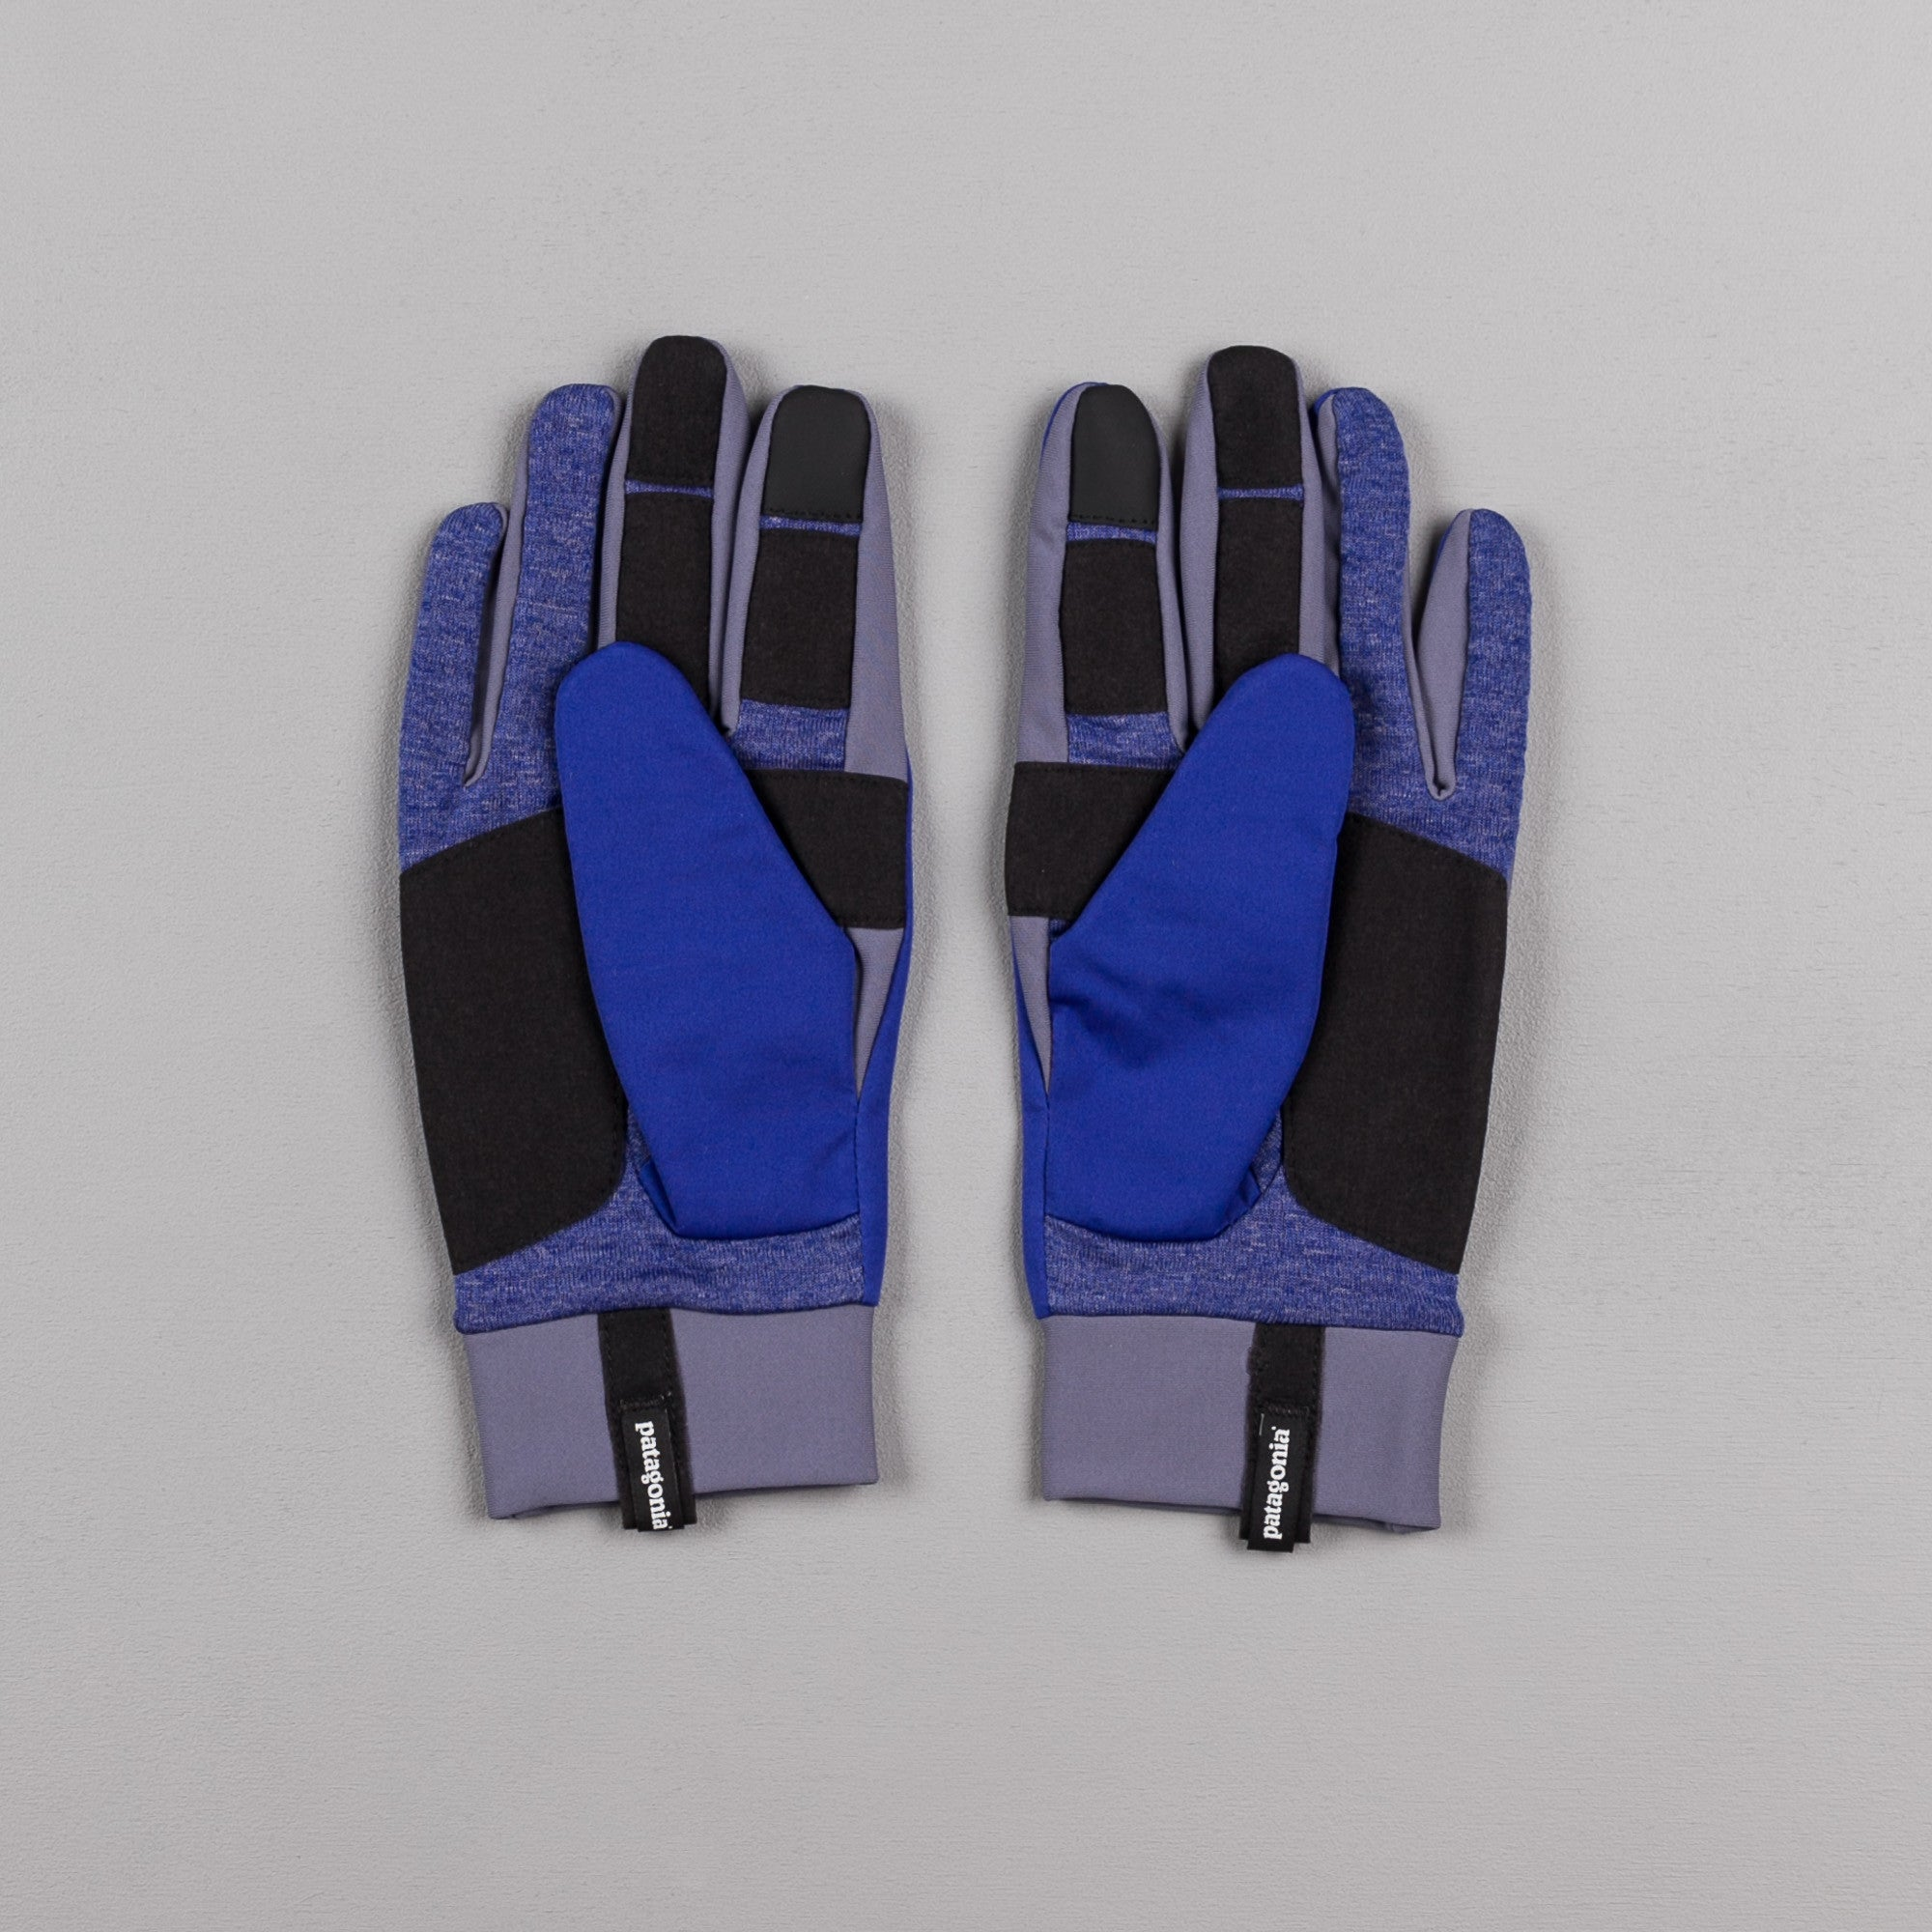 Patagonia Wind Shield Gloves - Harvest Moon Blue